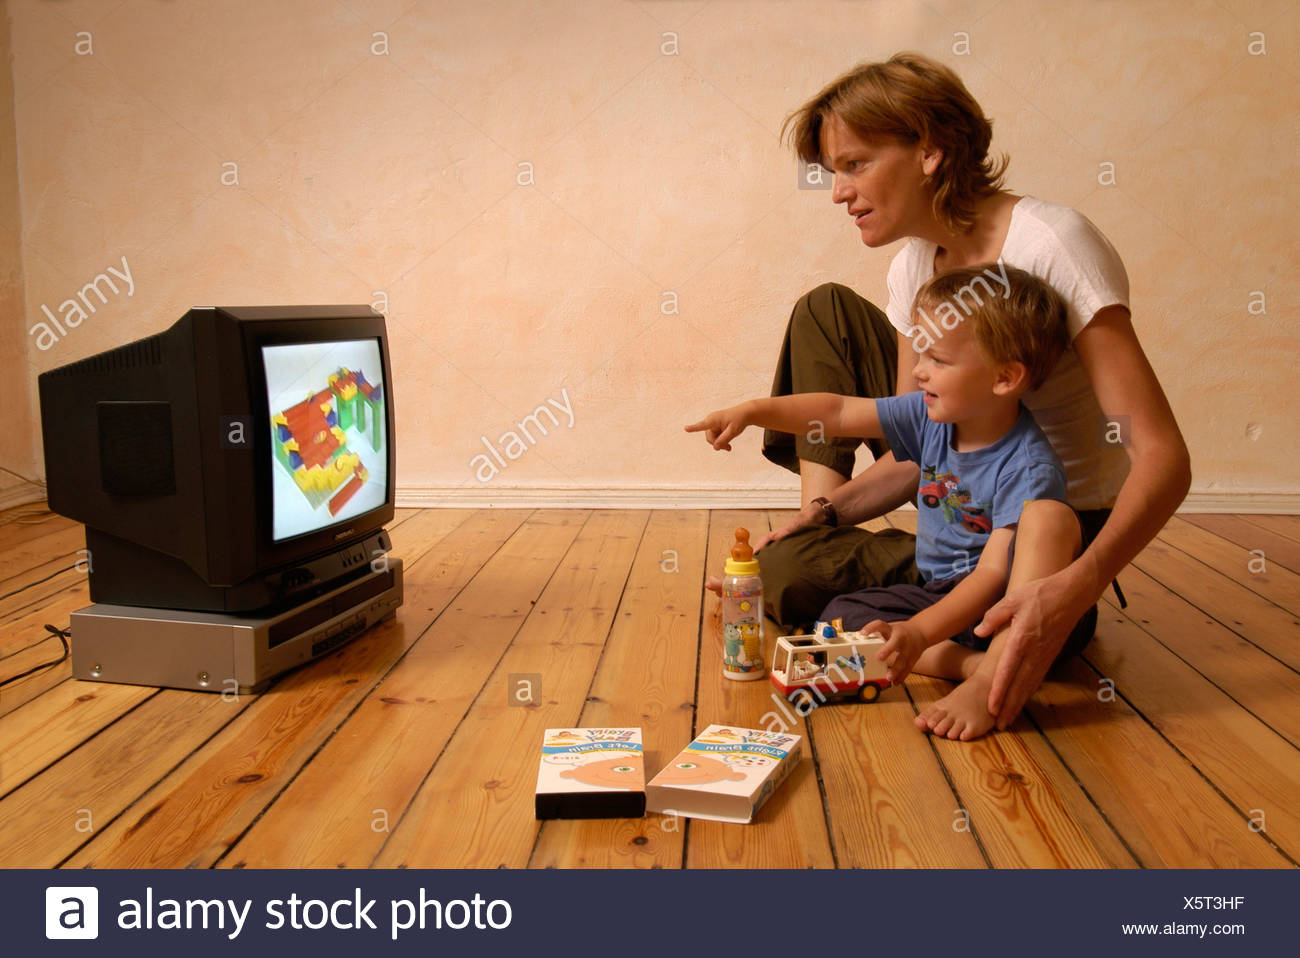 Mother and child watching a video - Stock Image